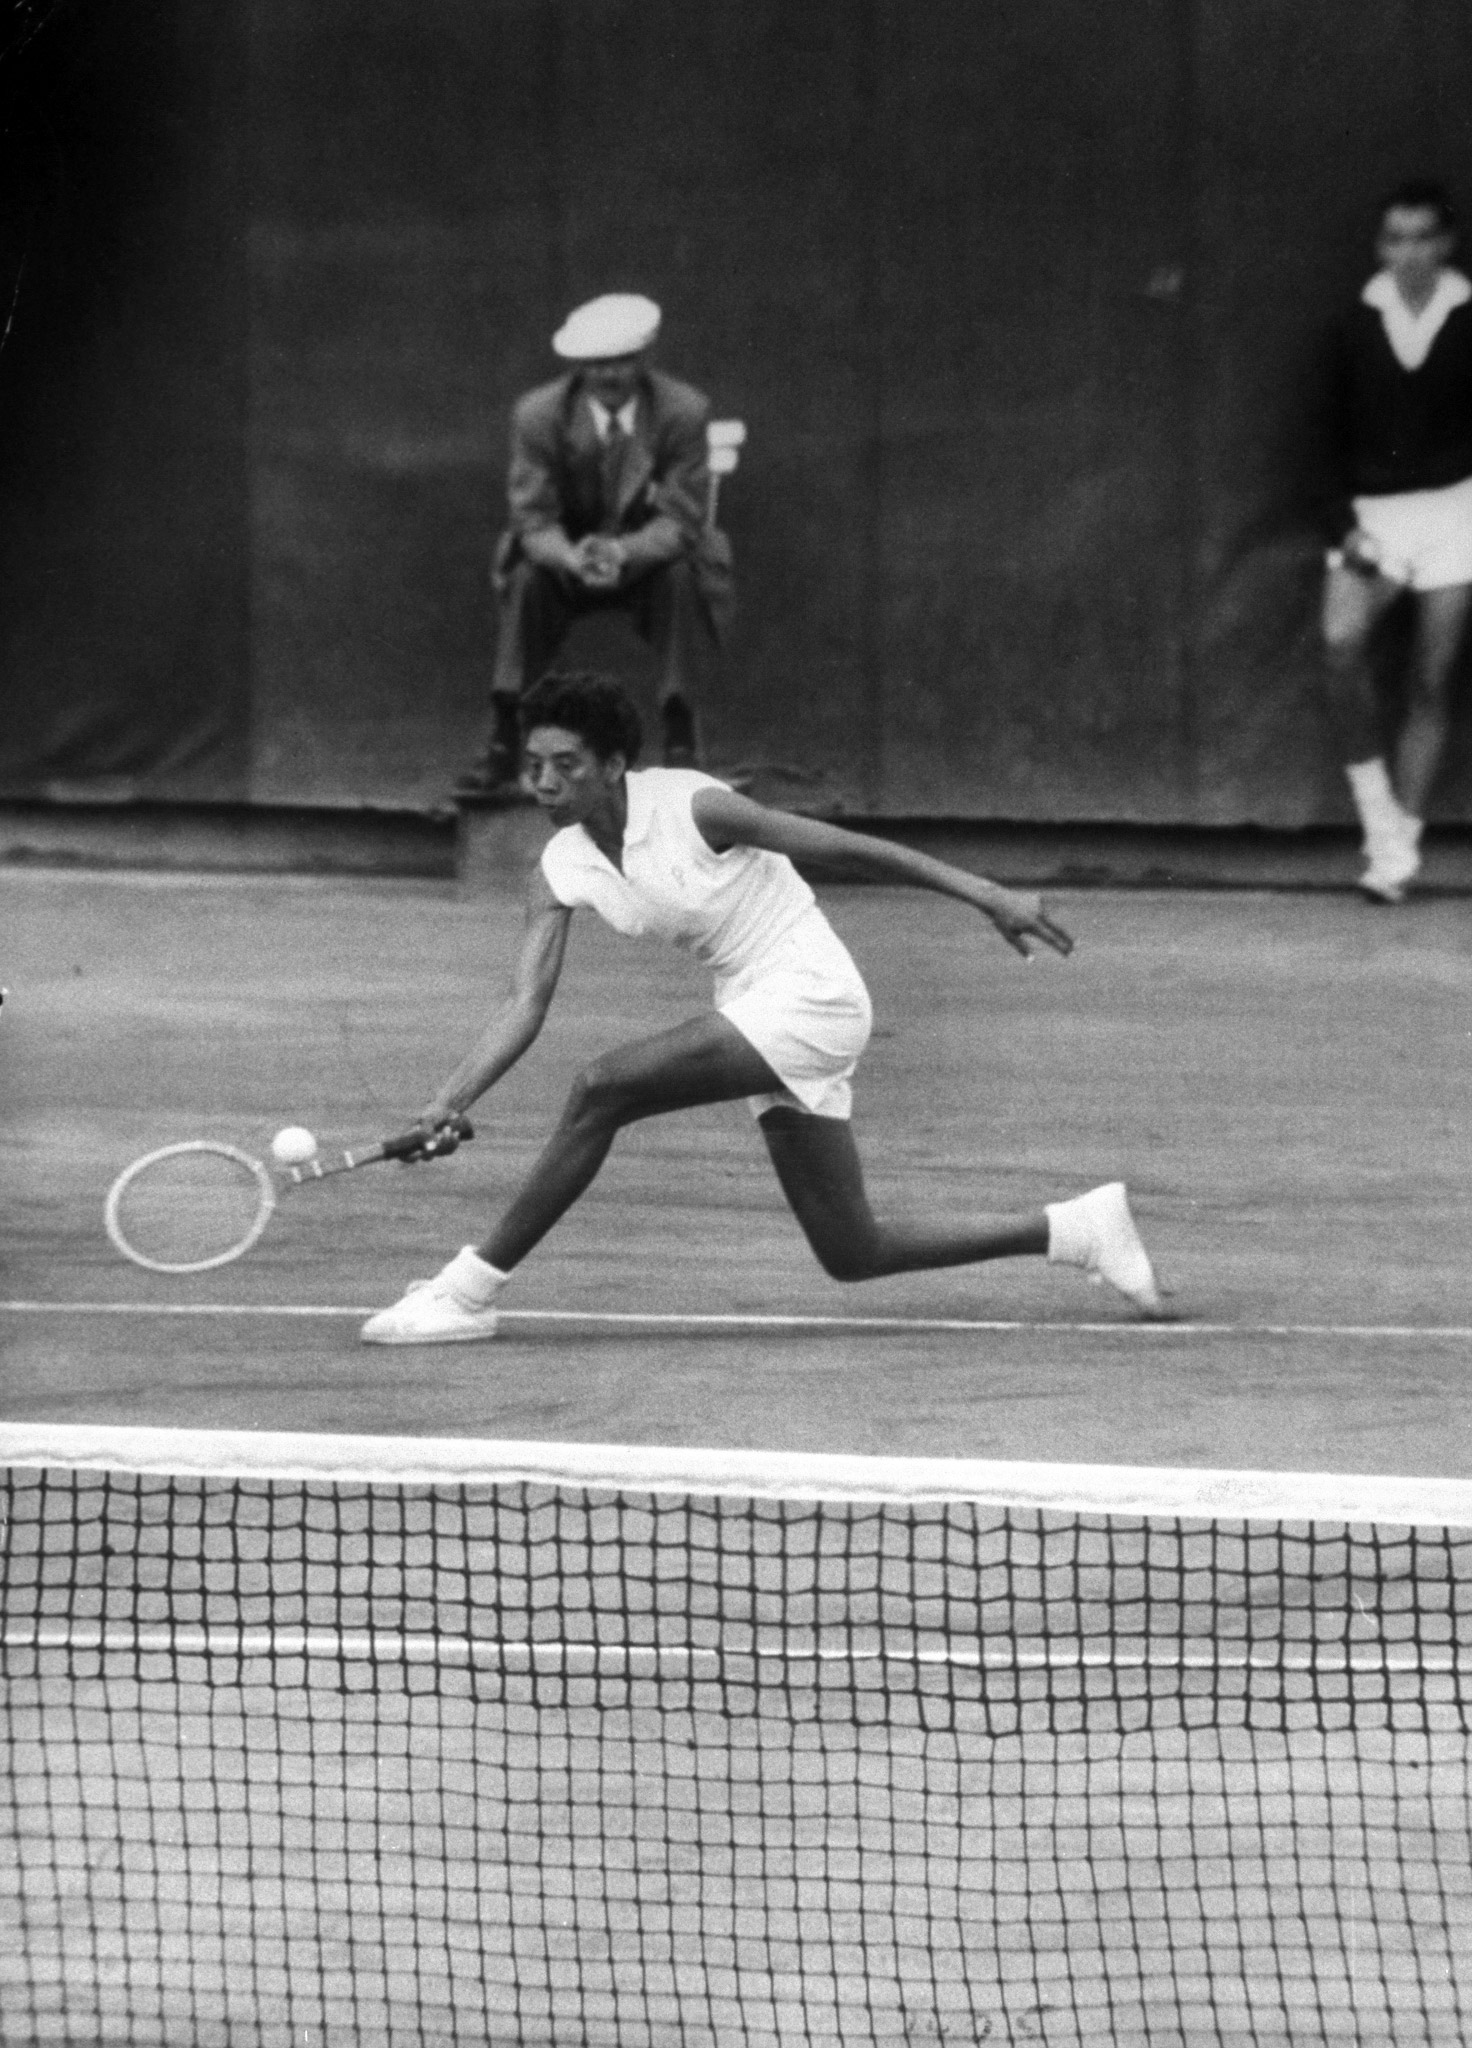 Caption from LIFE. Range and reach enable 5-foot 10 1/2 inch Althea to return well-placed shot in French championship. Though not a first-class strategist, she has learned how to follow up her shots. Once content to rely entirely on her extraordinary power and big service, she has now developed a steady backhand and a sharp volley.